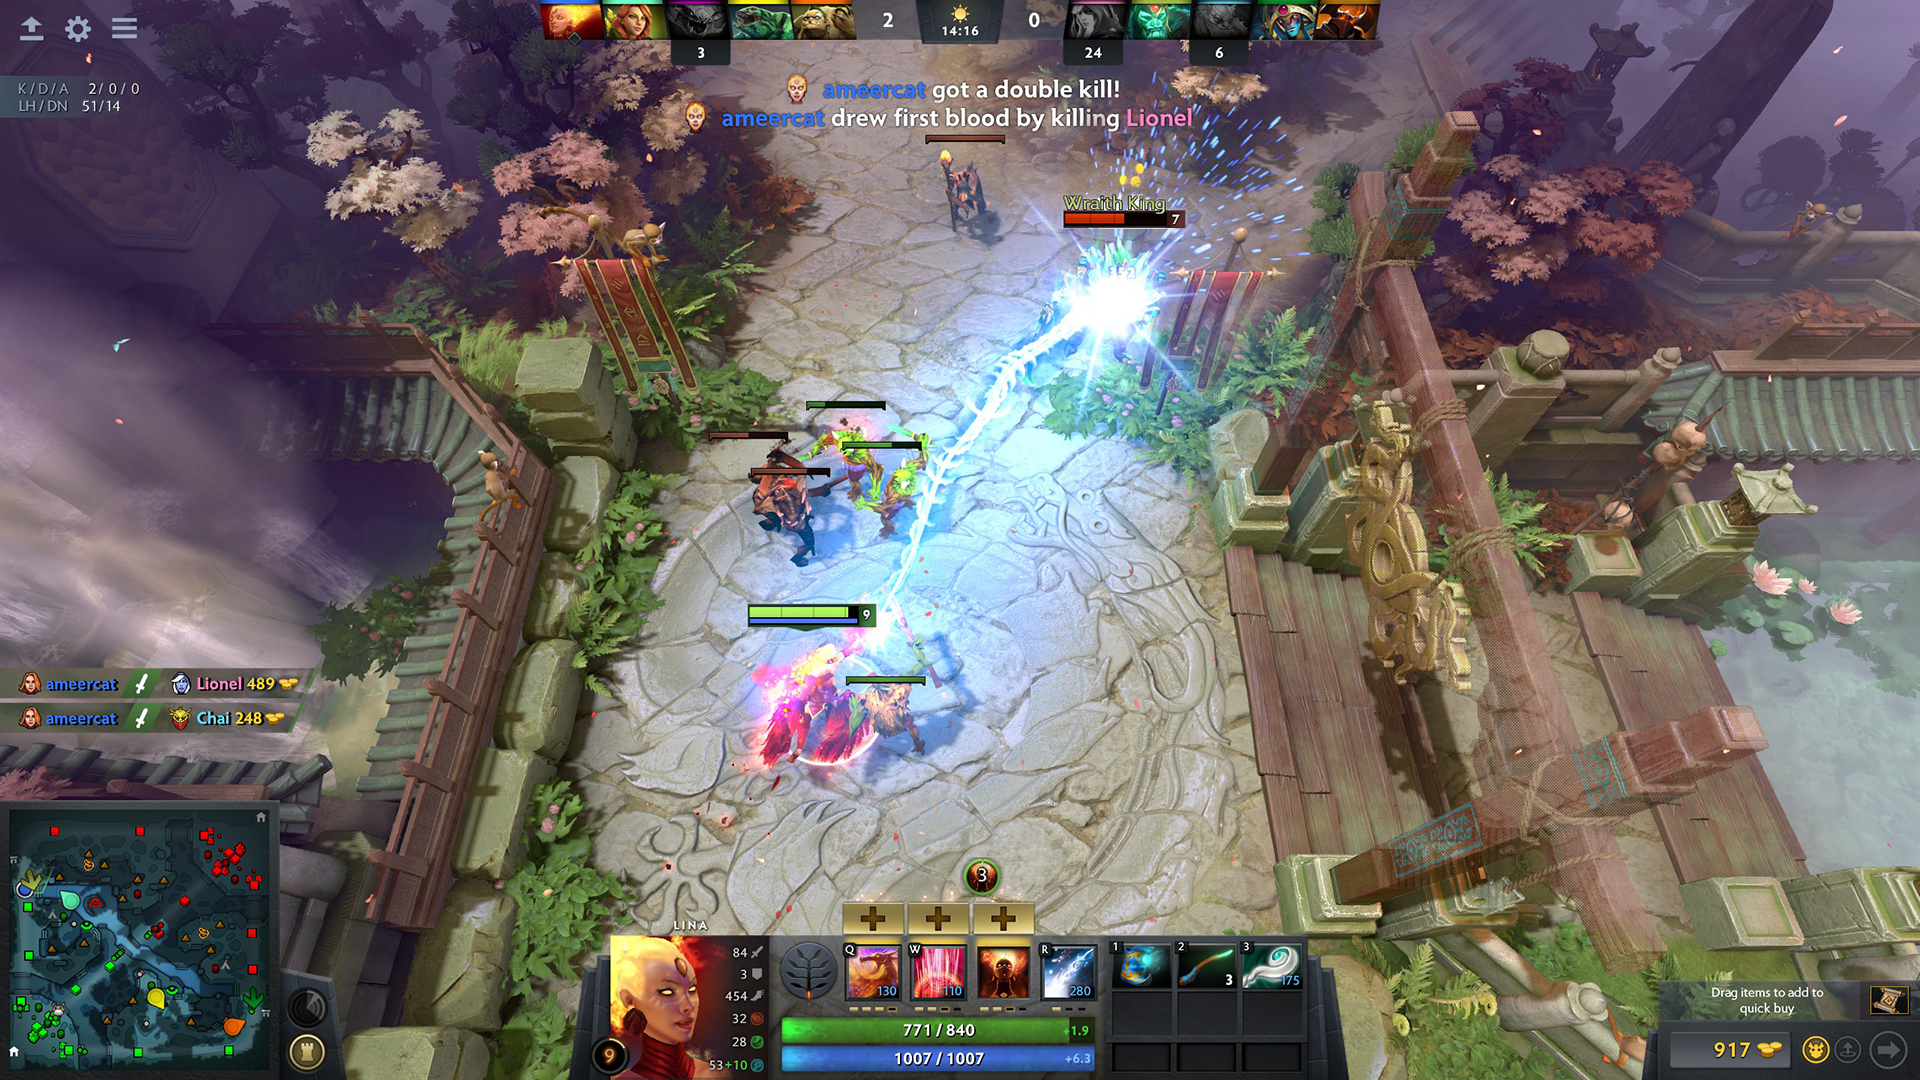 Dota 2 Gameplay Screenshot 2